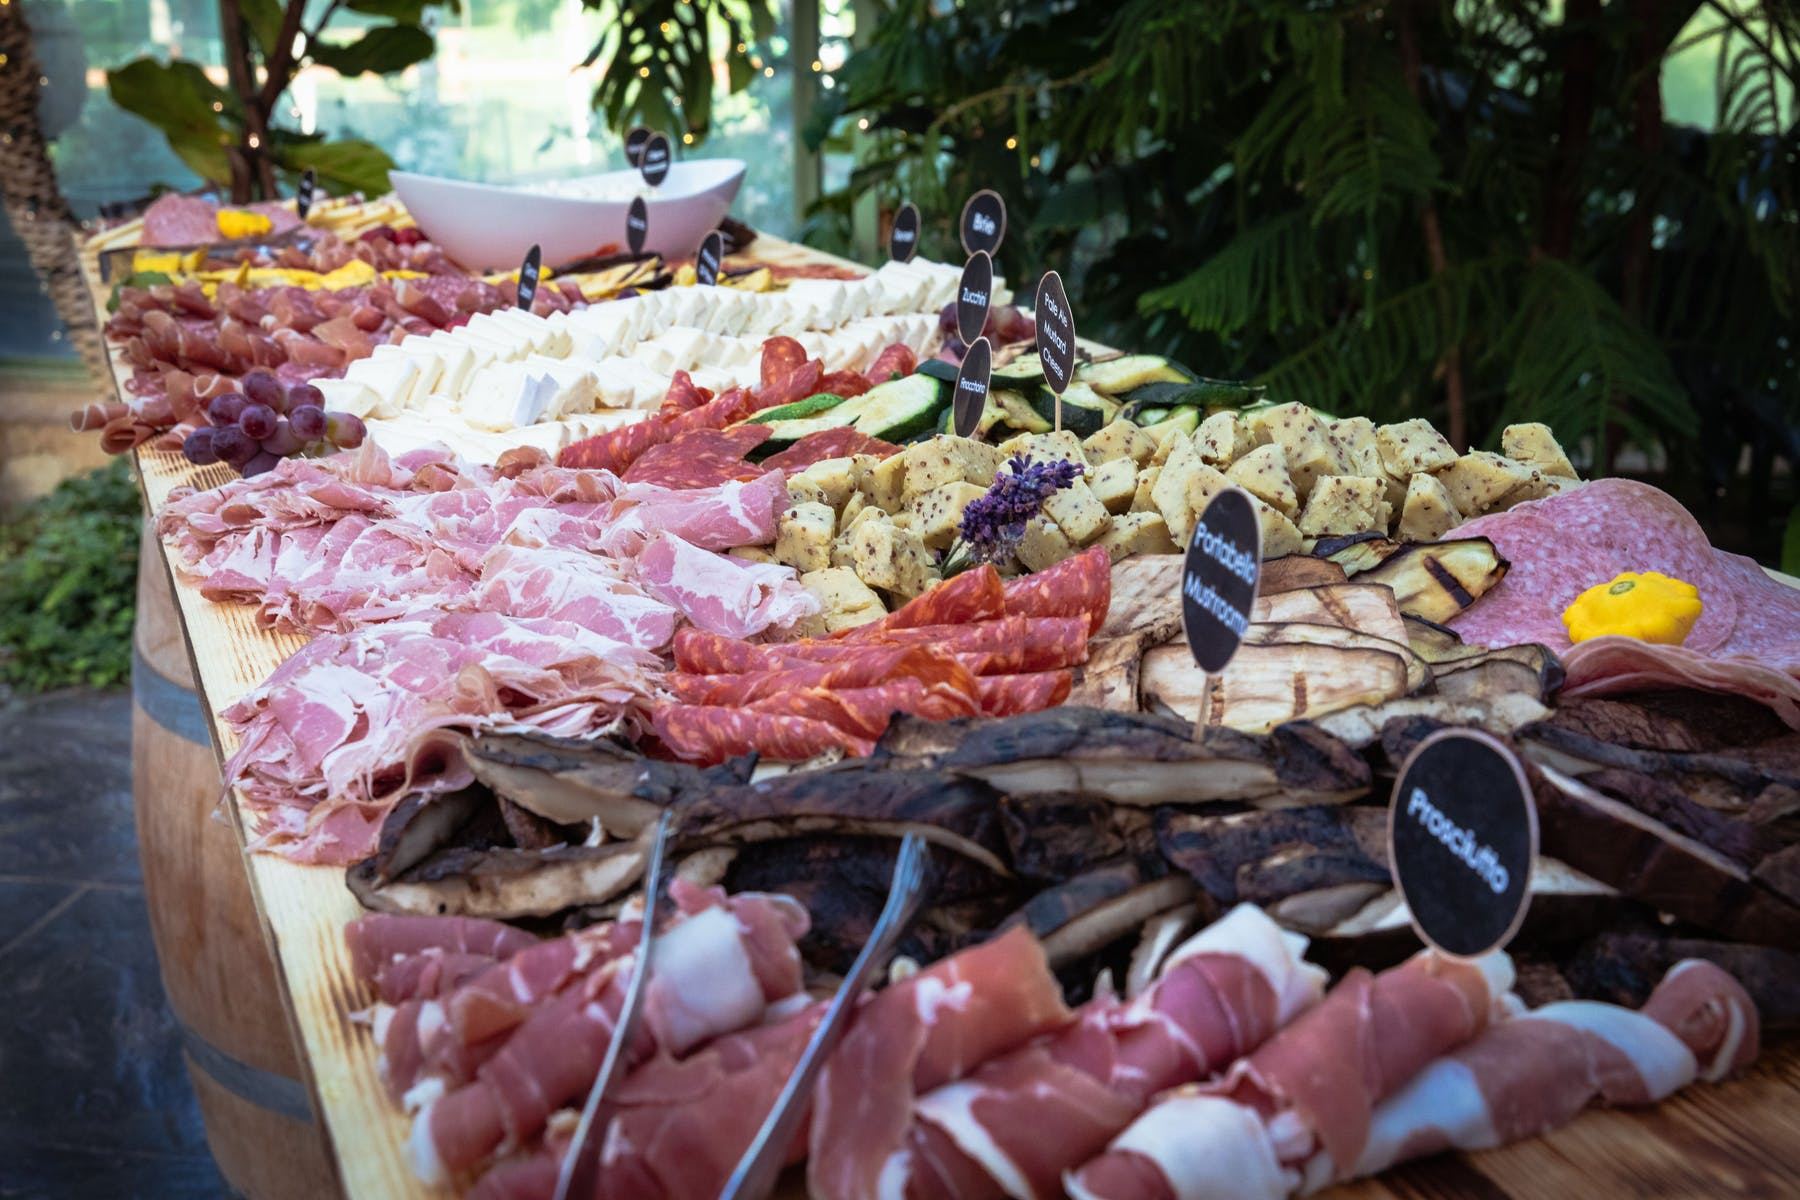 raw meat, jam and differnt types of food on a buffet table